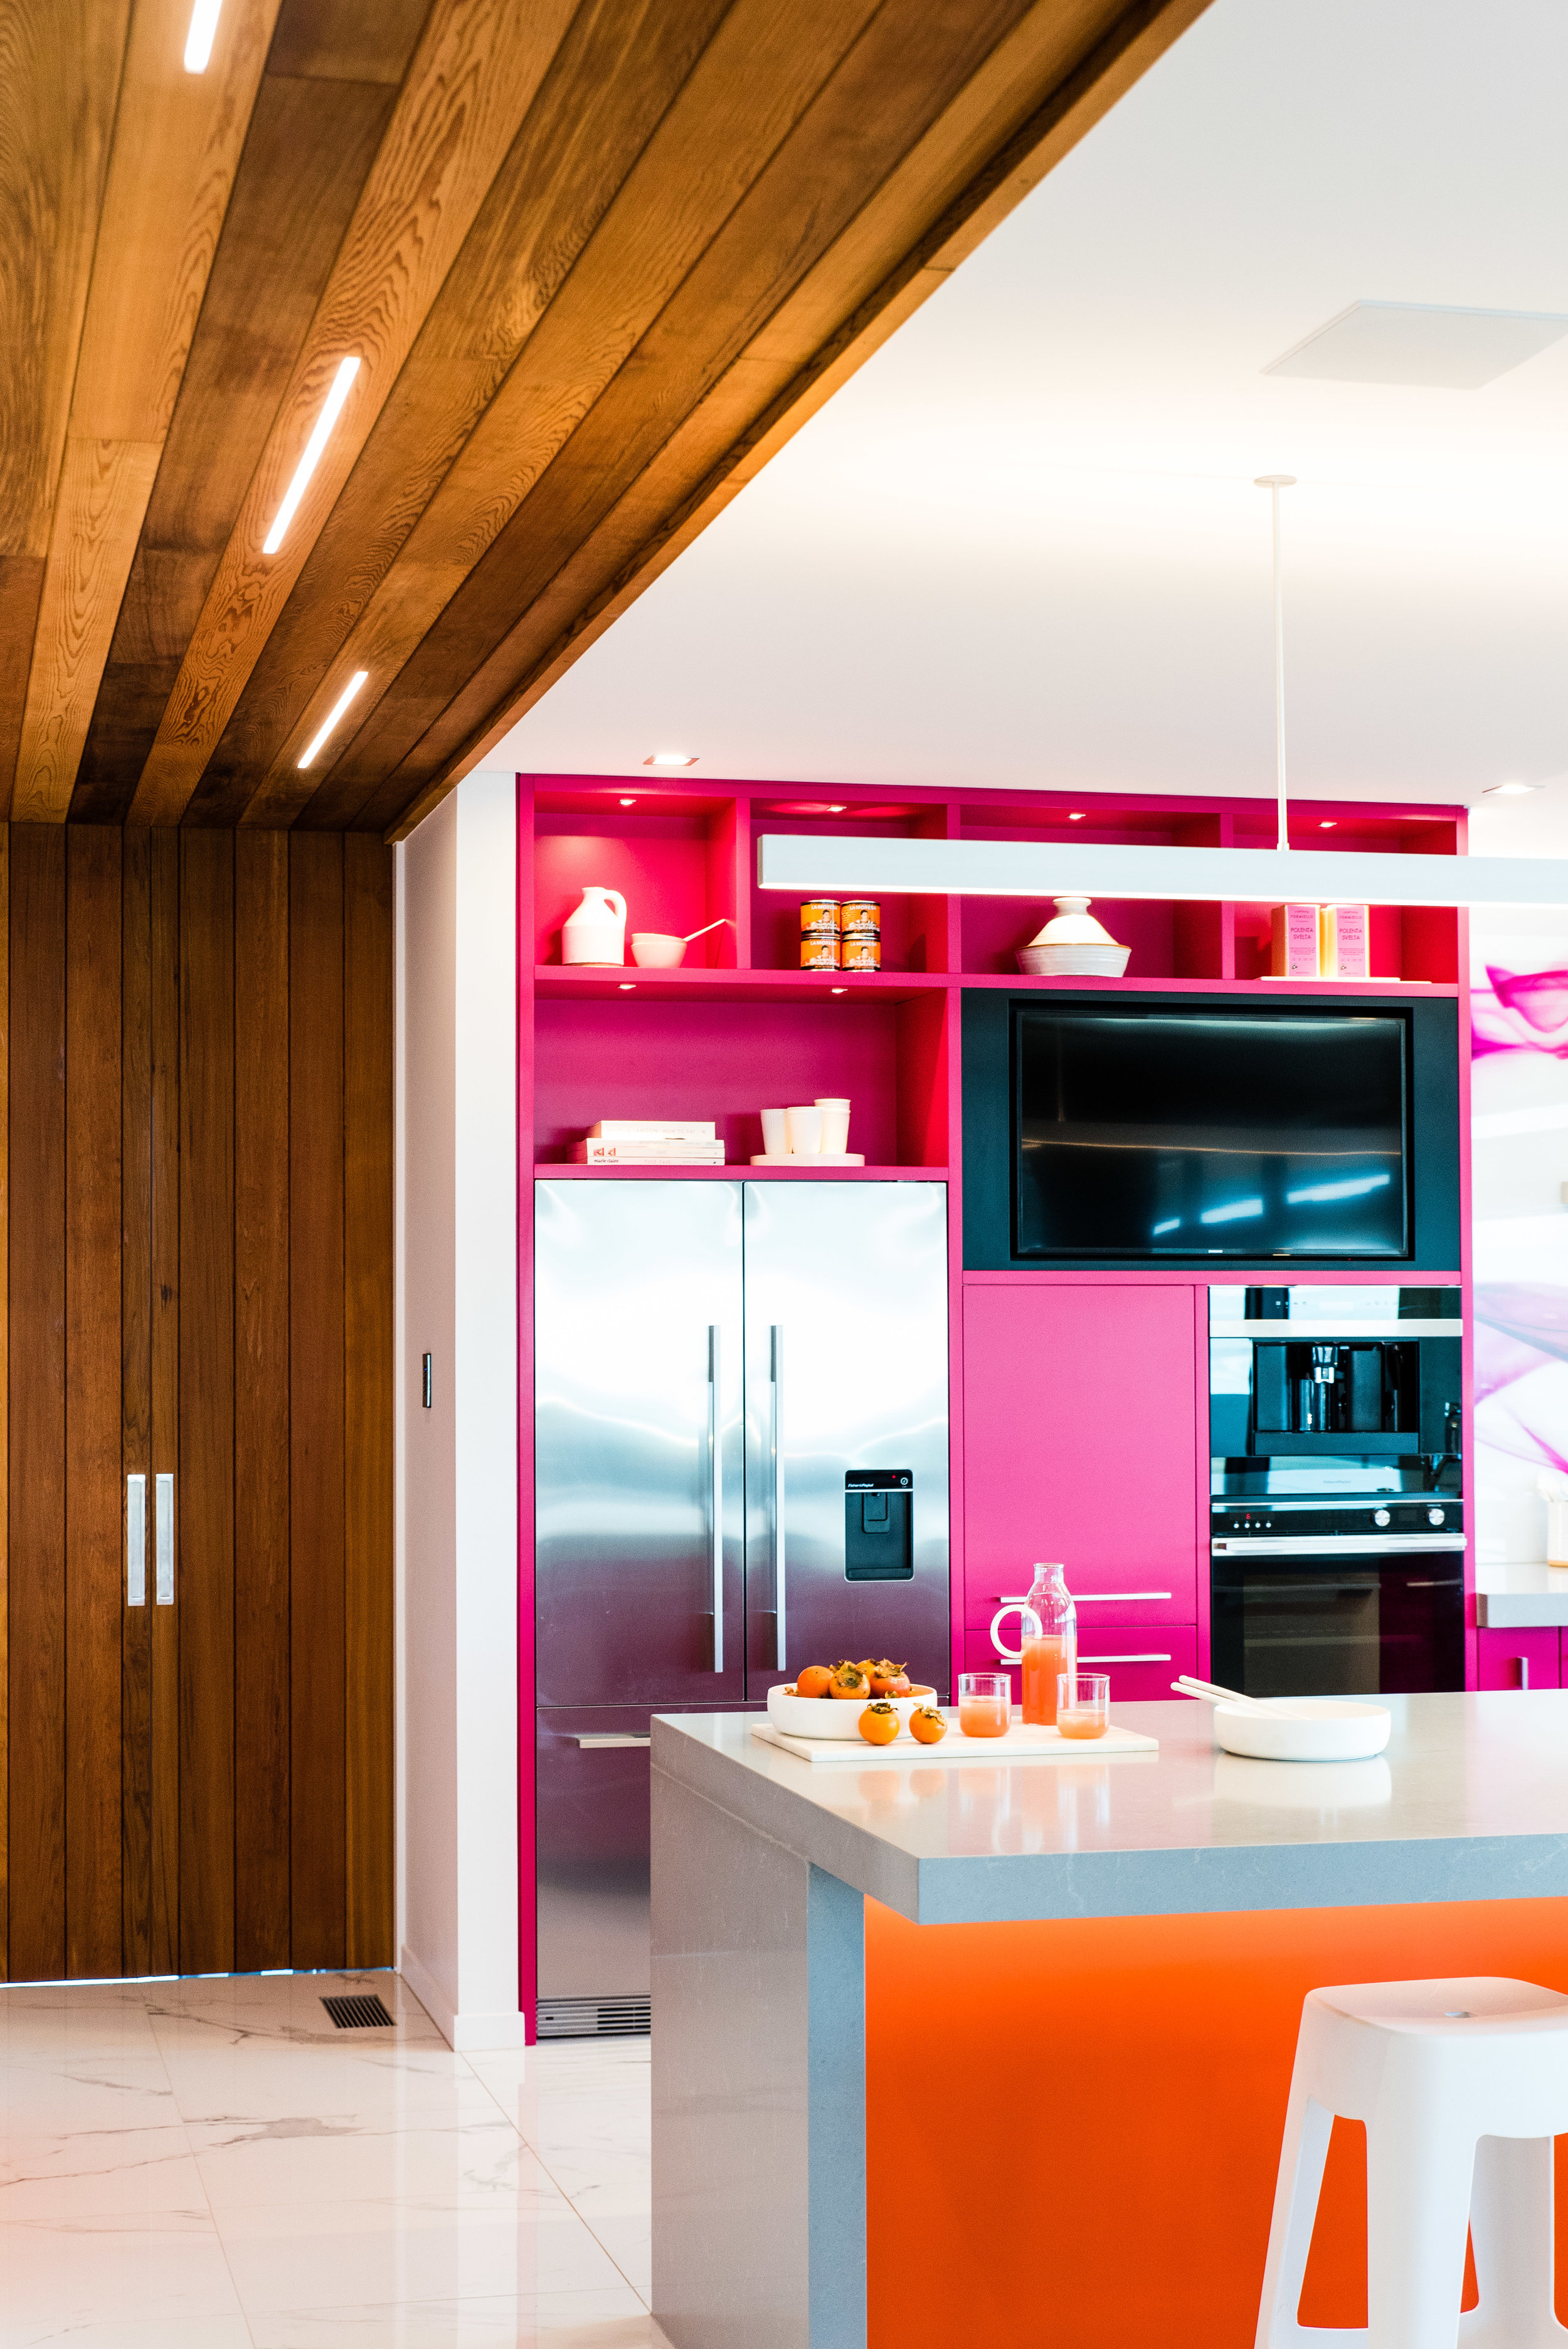 Hill House_Axis Detail looking into Kitchen_8 of 10.jpg